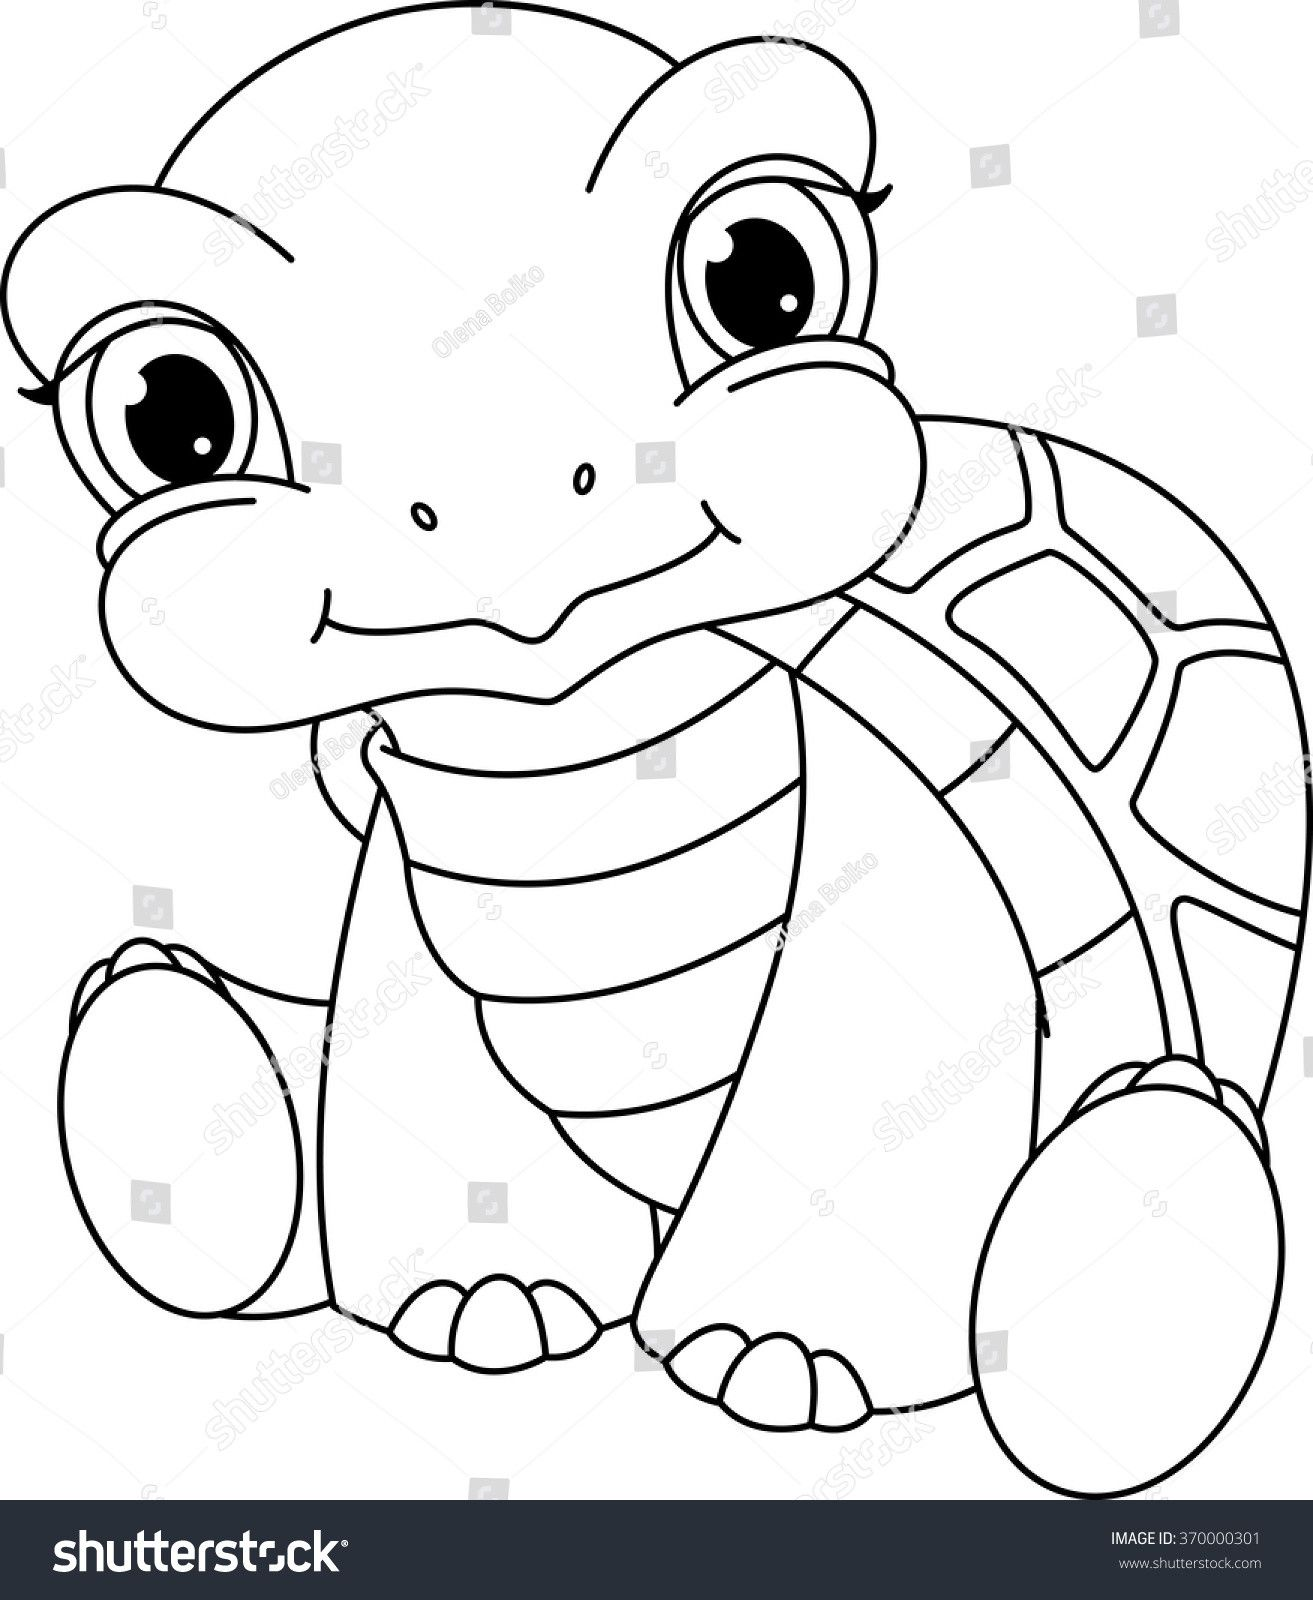 Cute Turtle Coloring Pages For Adults on a budget